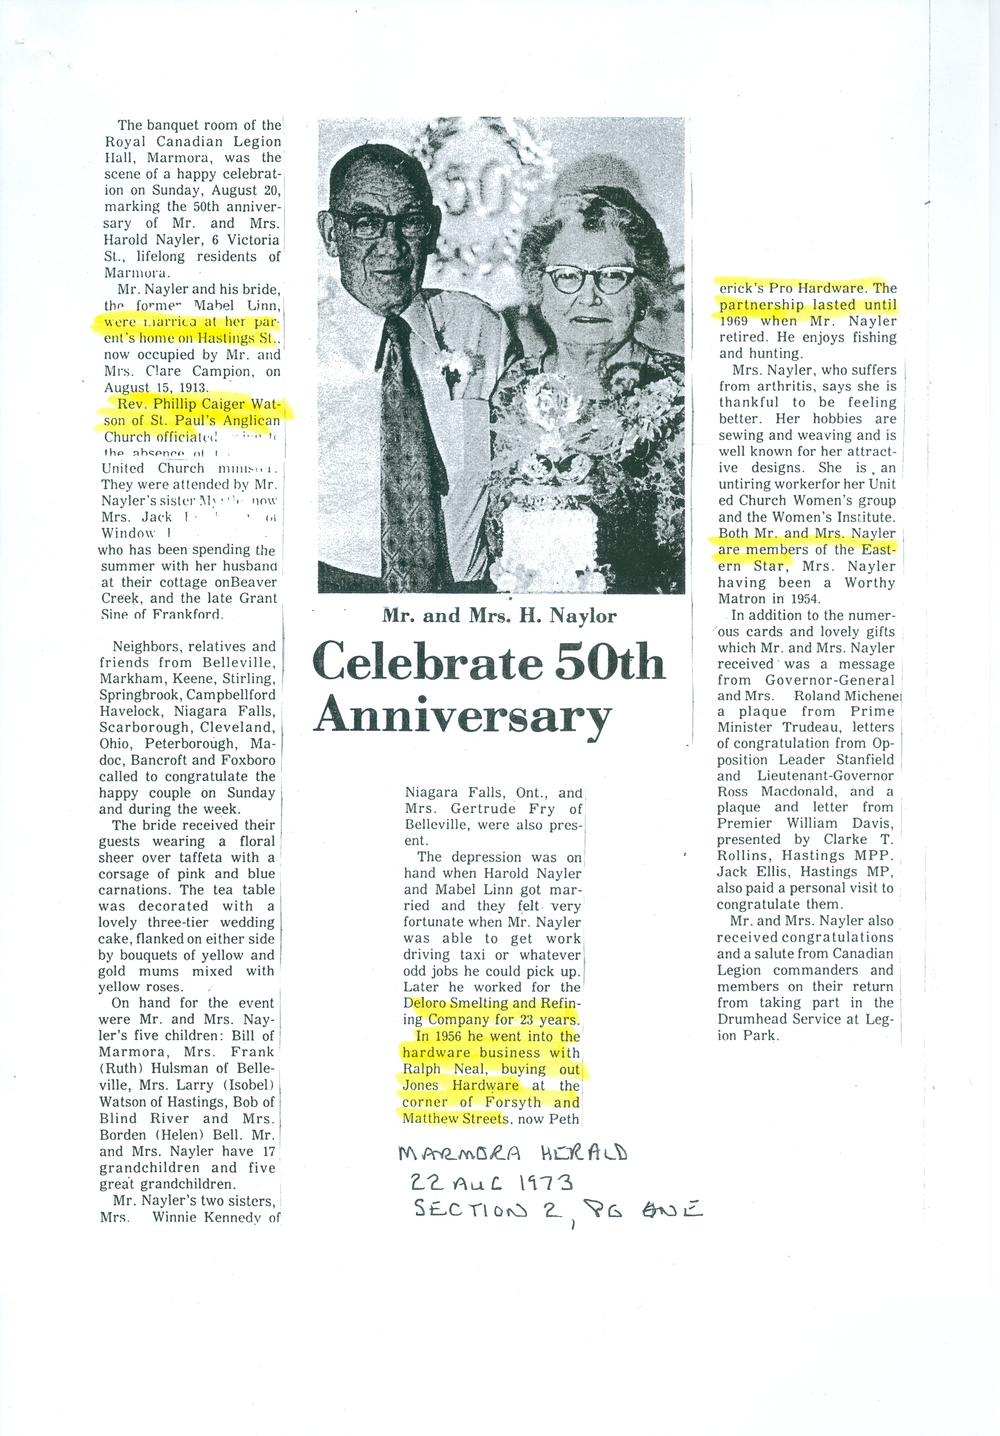 Nayler, Harold and Mabel Linn, 50th anniversary,  1973.jpg